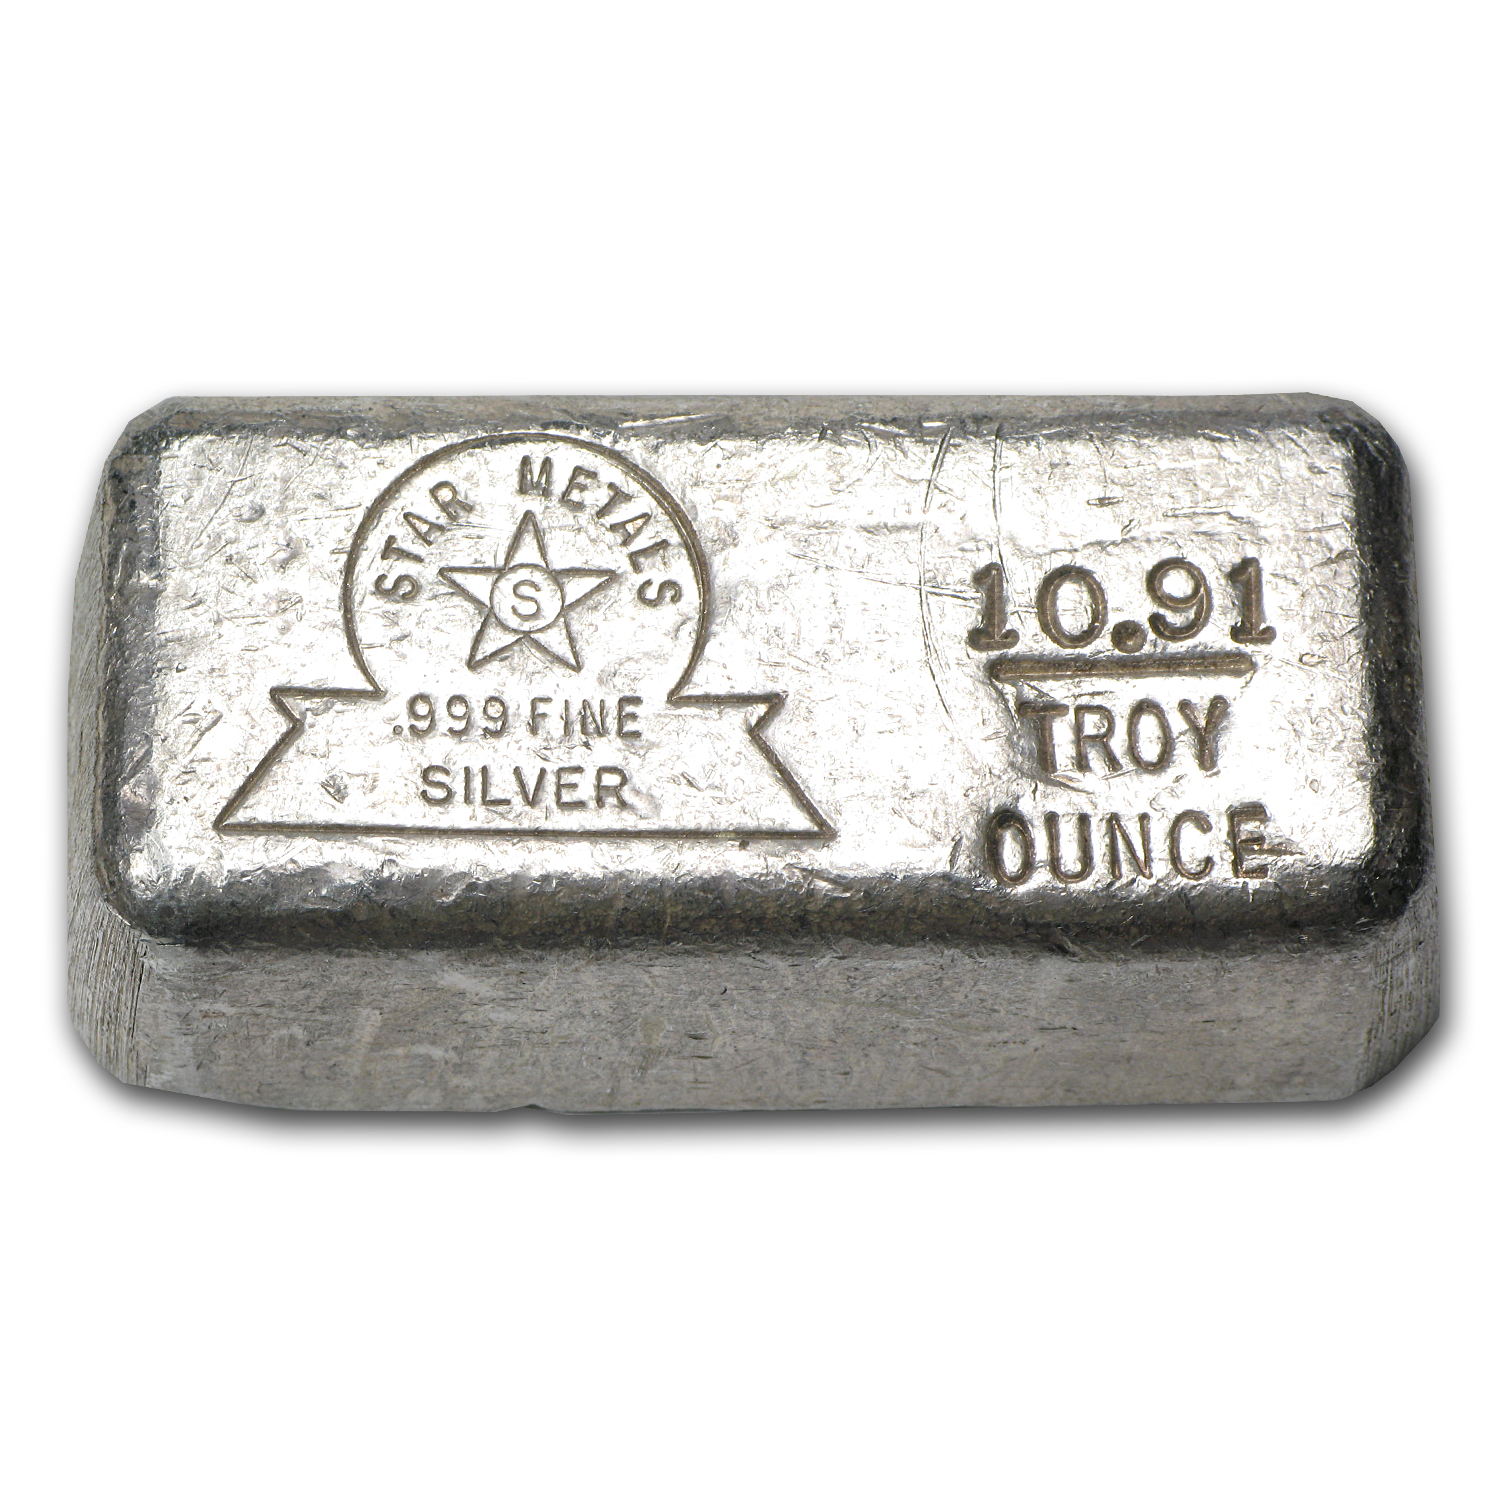 10.91 oz Silver Bar - Star Metals